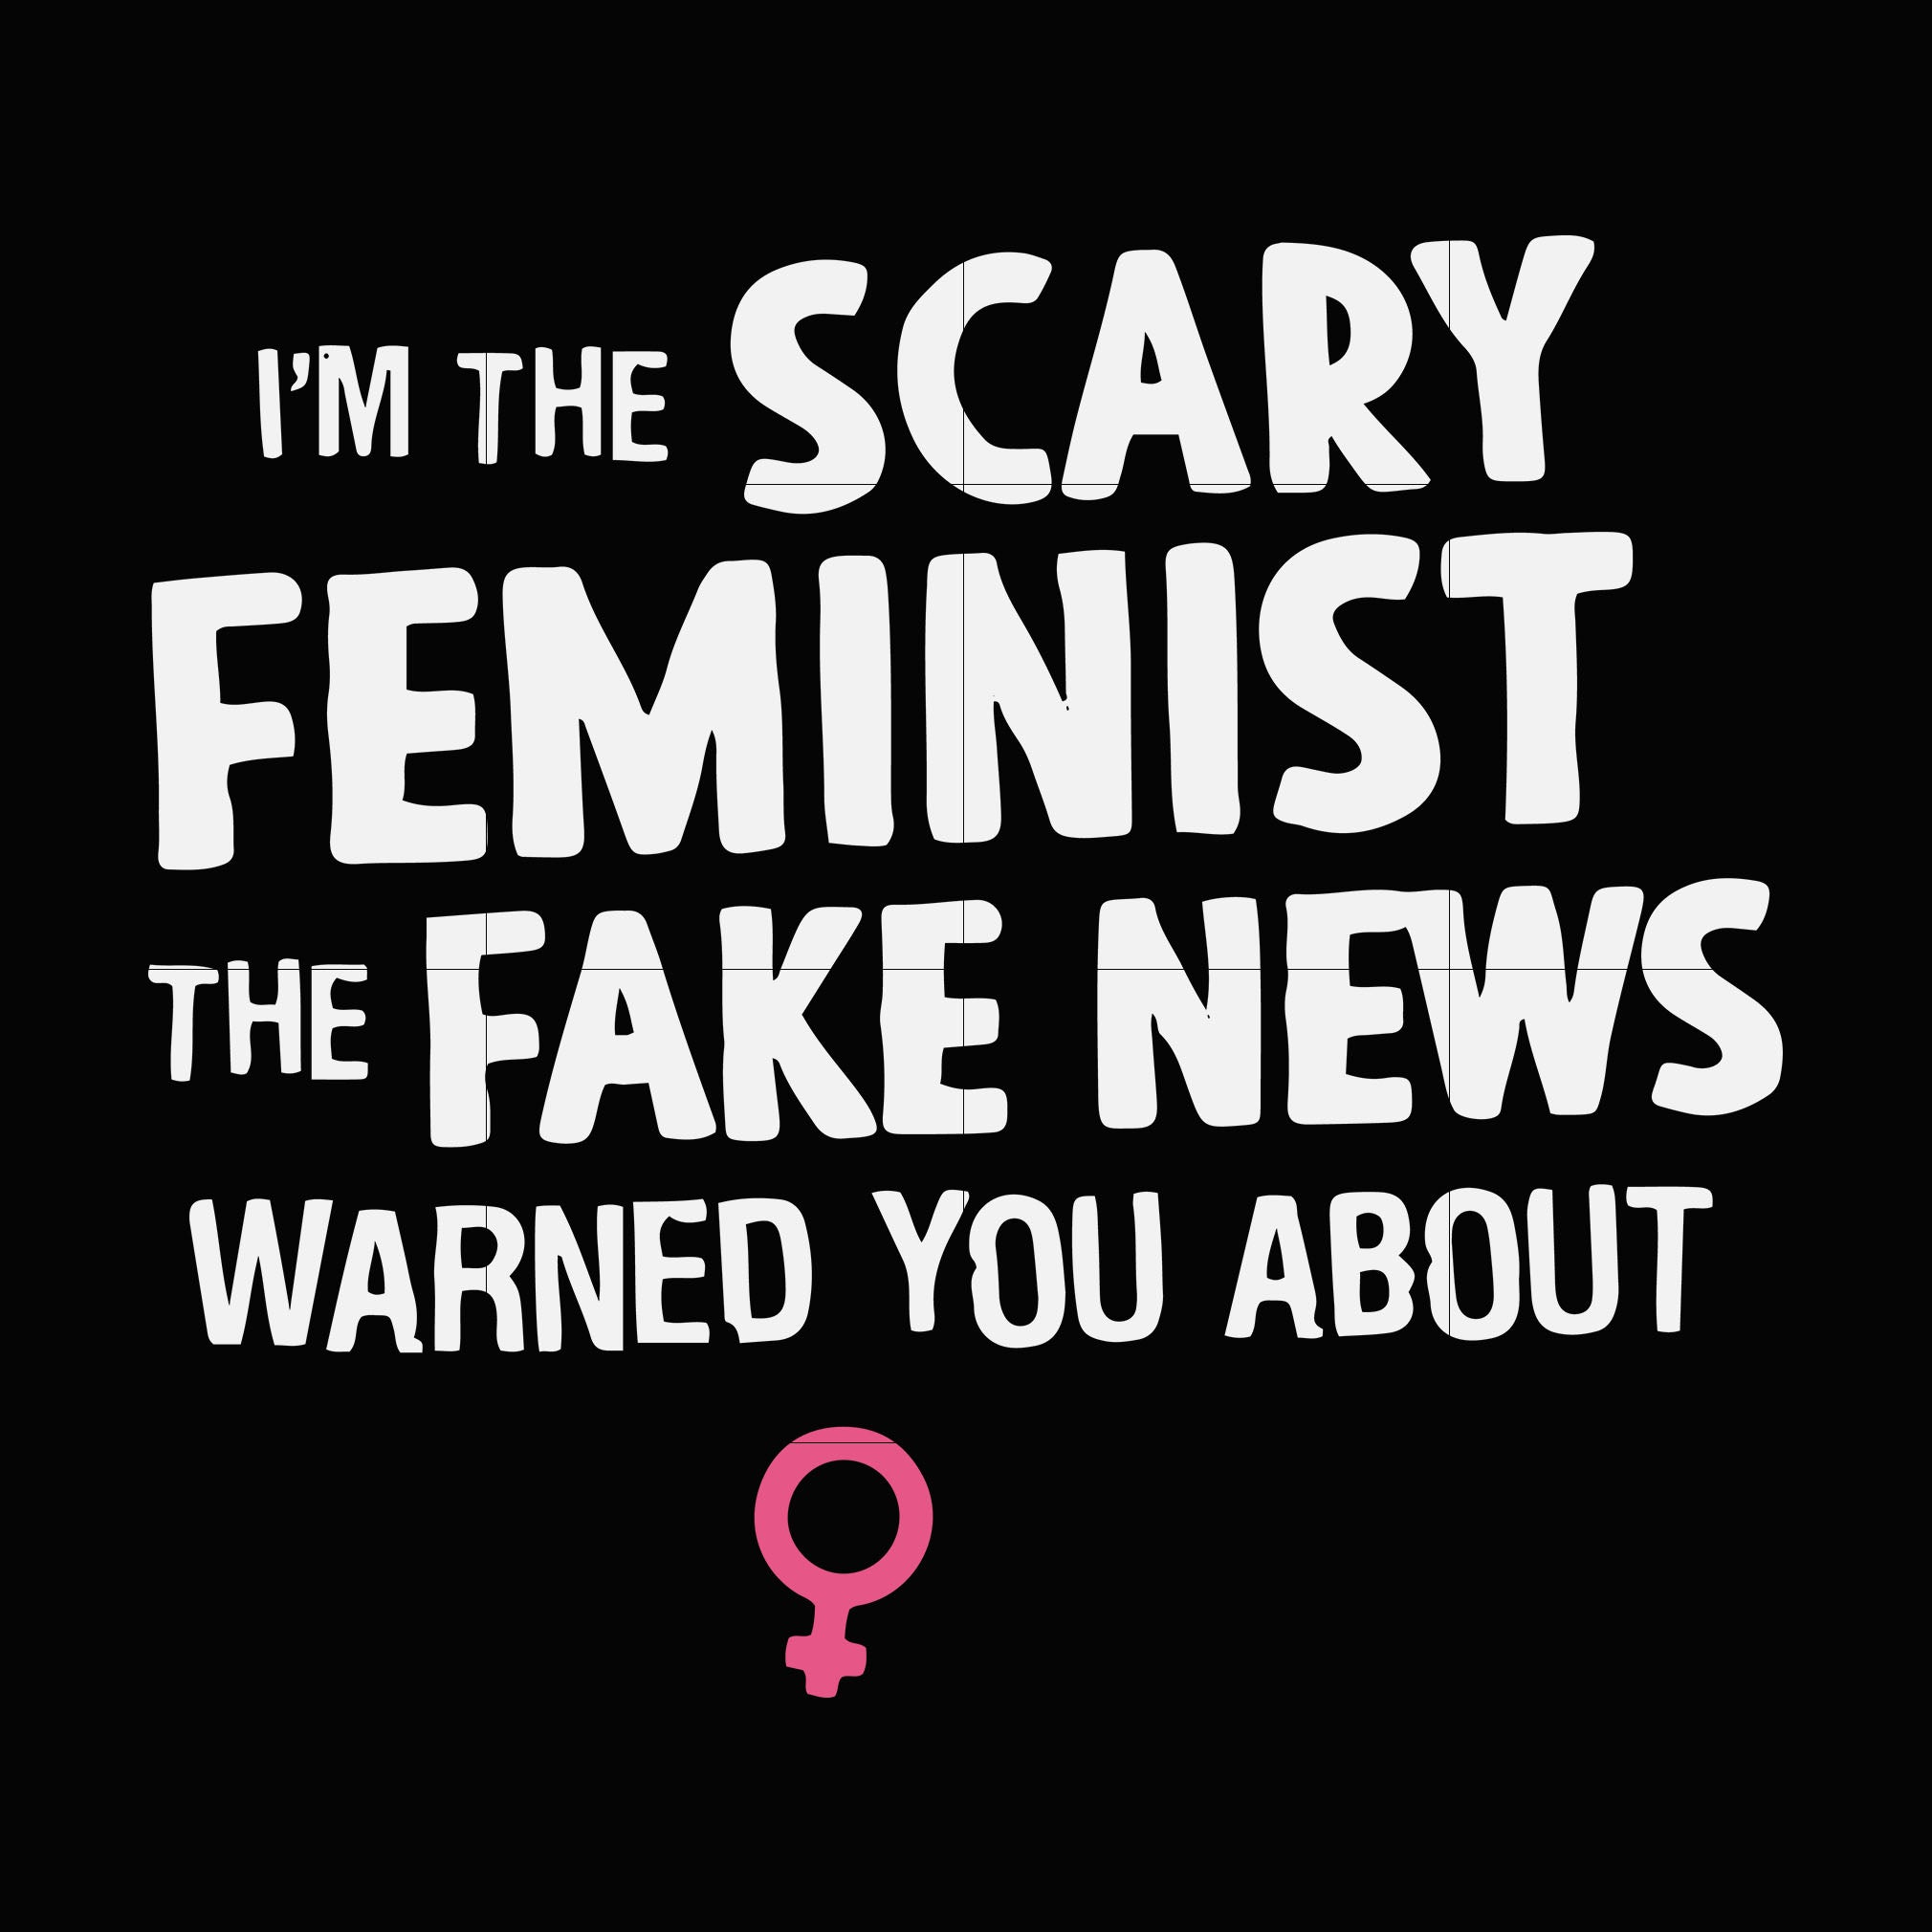 I'm the scary feminist the fake news warned you about  svg ,dxf,eps,png digital file